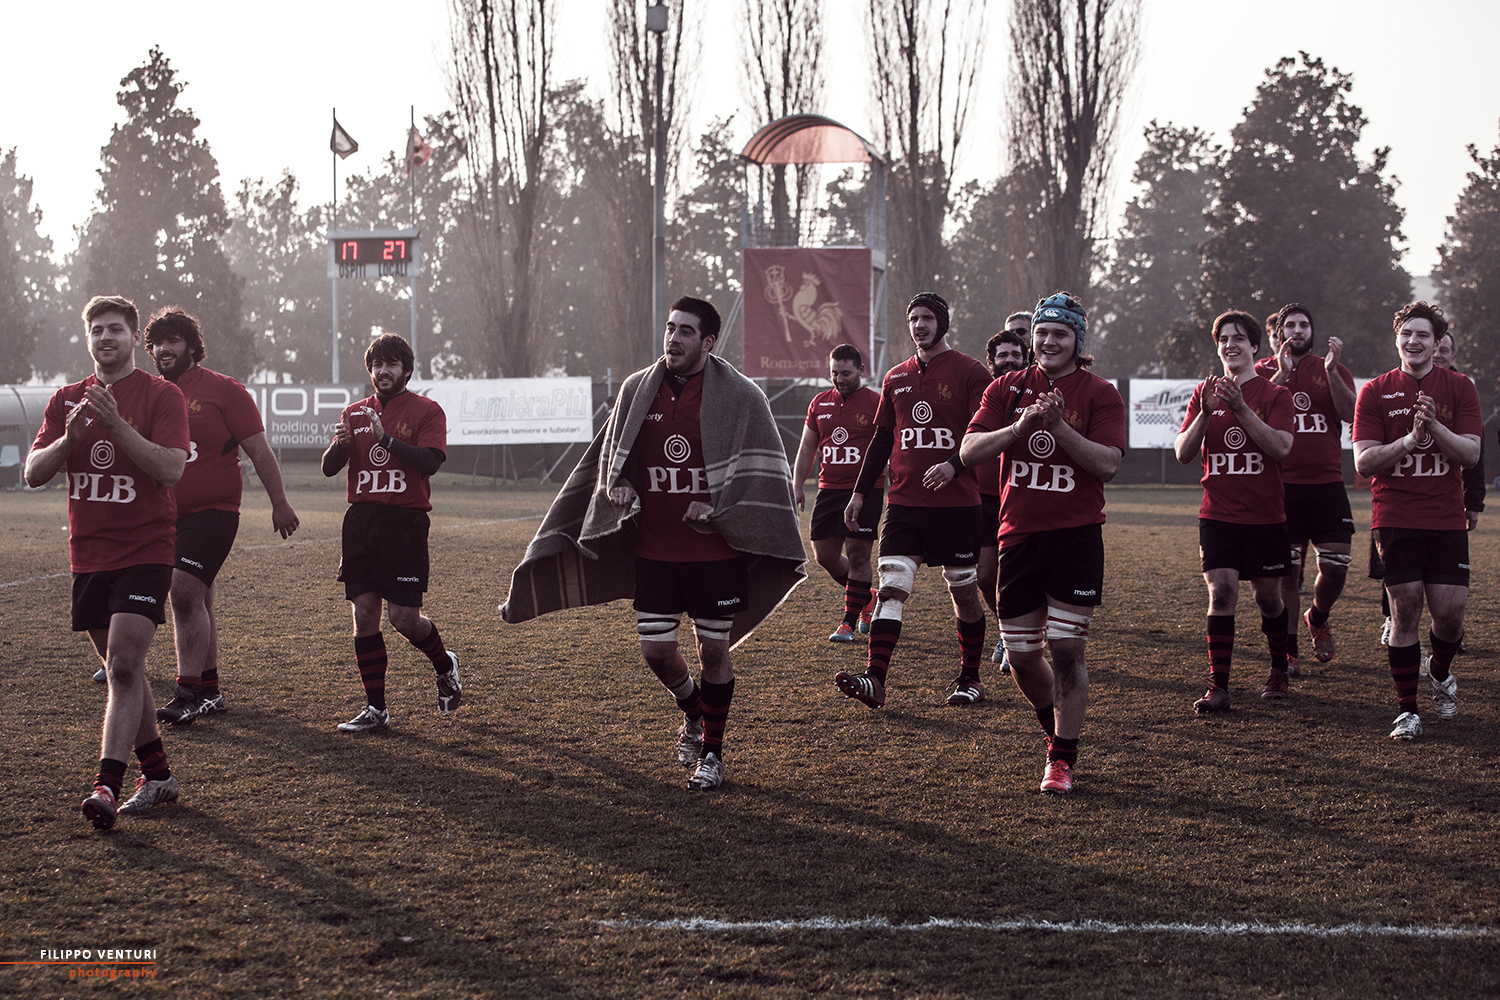 romagna_rugby_parma_20.jpg